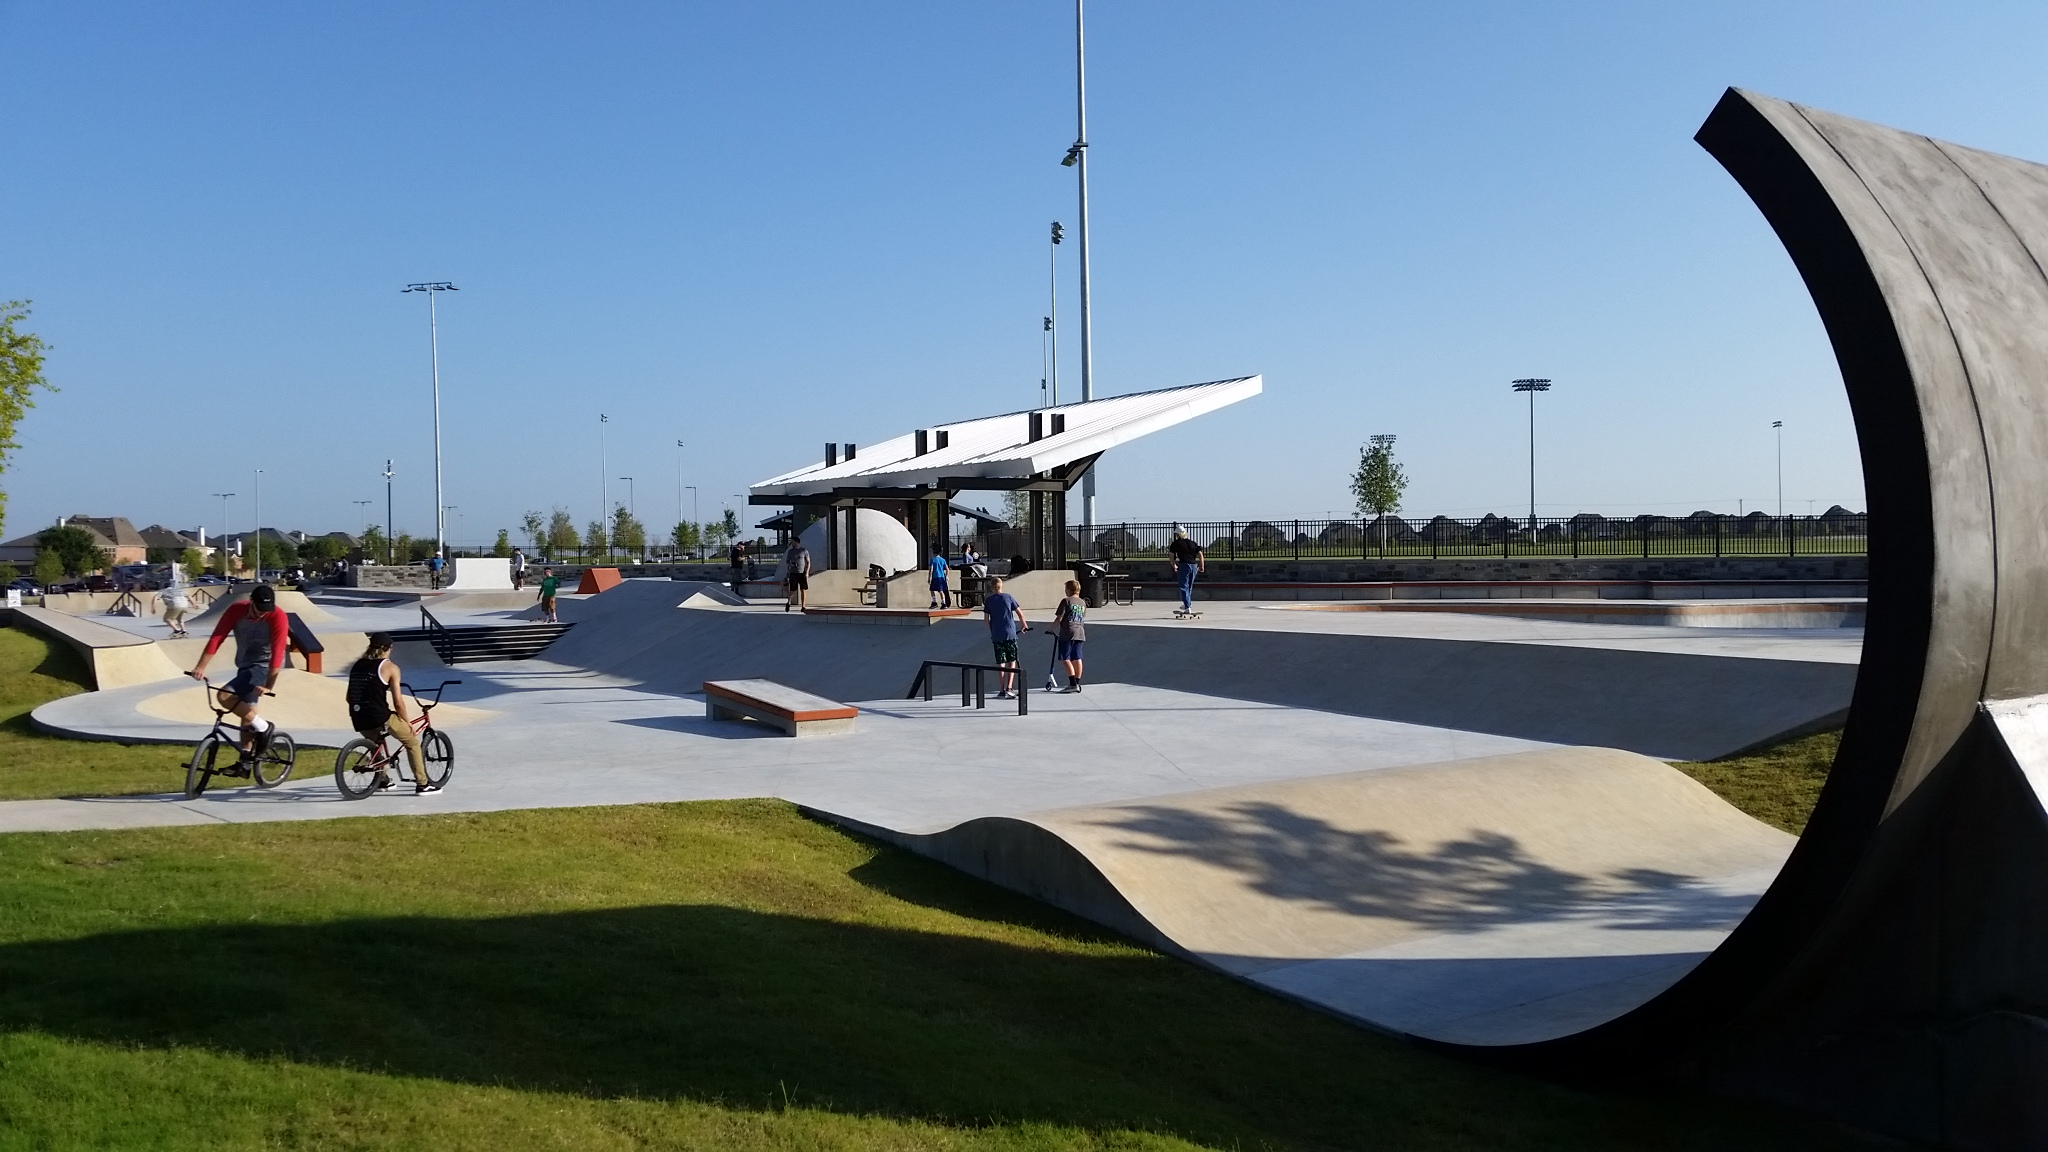 Frisco's 14 foot over-vertical 'concrete wave'. The park provides facilities for skateboard, BMX and scooters